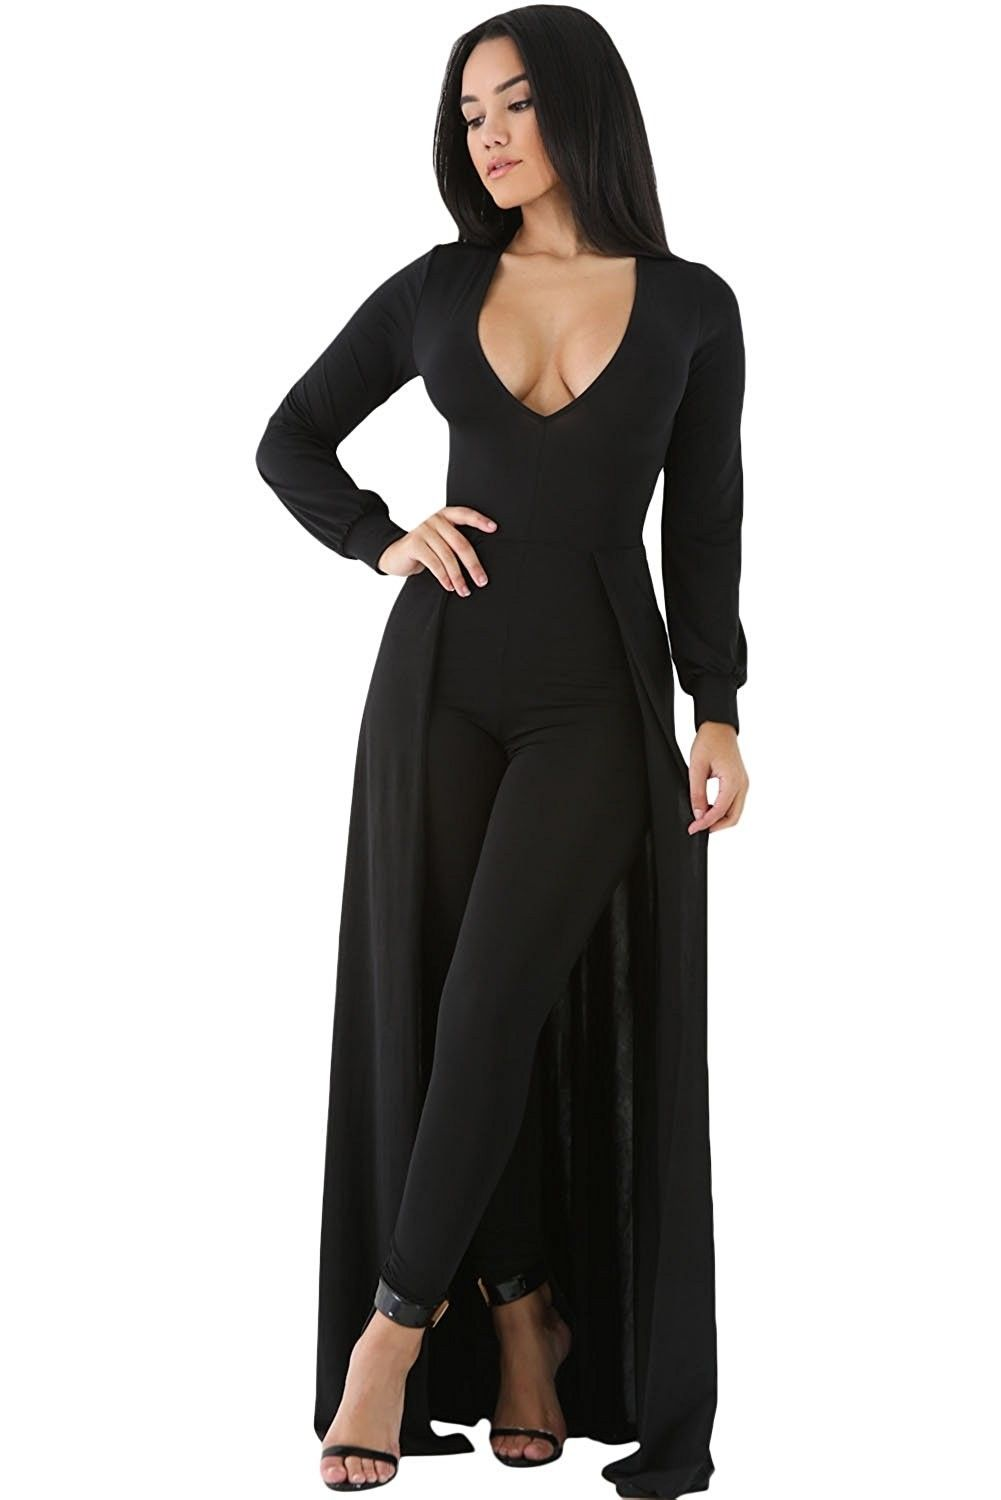 Women Fashion Maxi Skirt Overlay Elegant Party Jumpsuit - Black ... 6f07eed5c